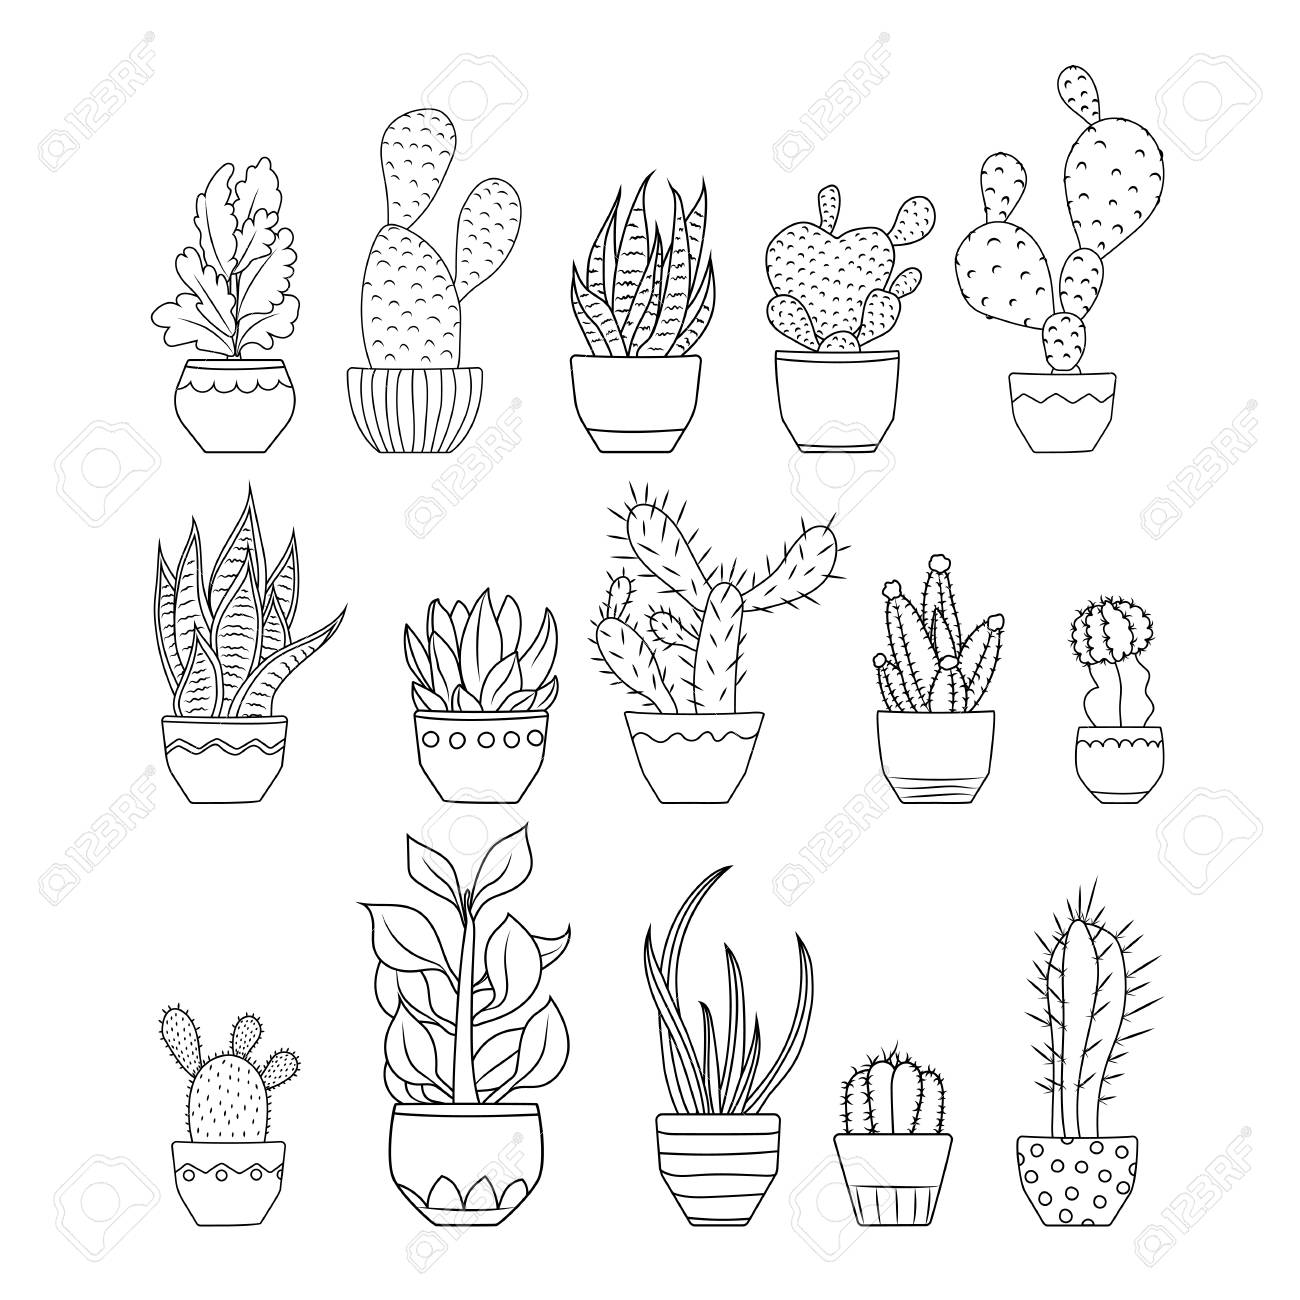 Various Exotic Cactus Succulent Flowers Species Planted In Pots Royalty Free Cliparts Vectors And Stock Illustration Image 99484691